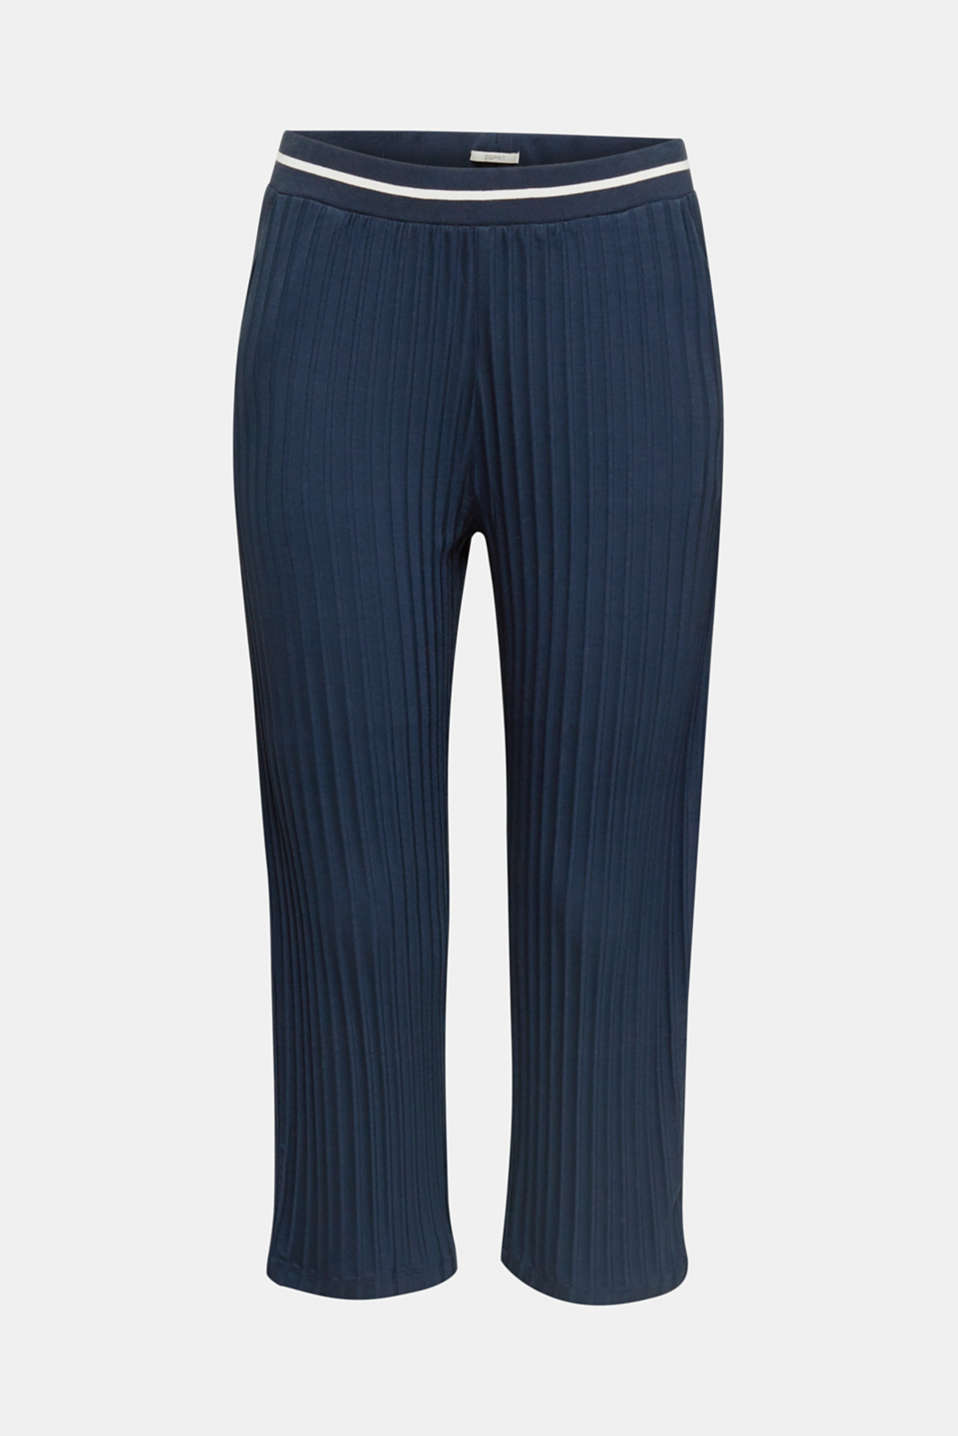 Stretch jersey trousers with a ribbed texture, NAVY 2, detail image number 5